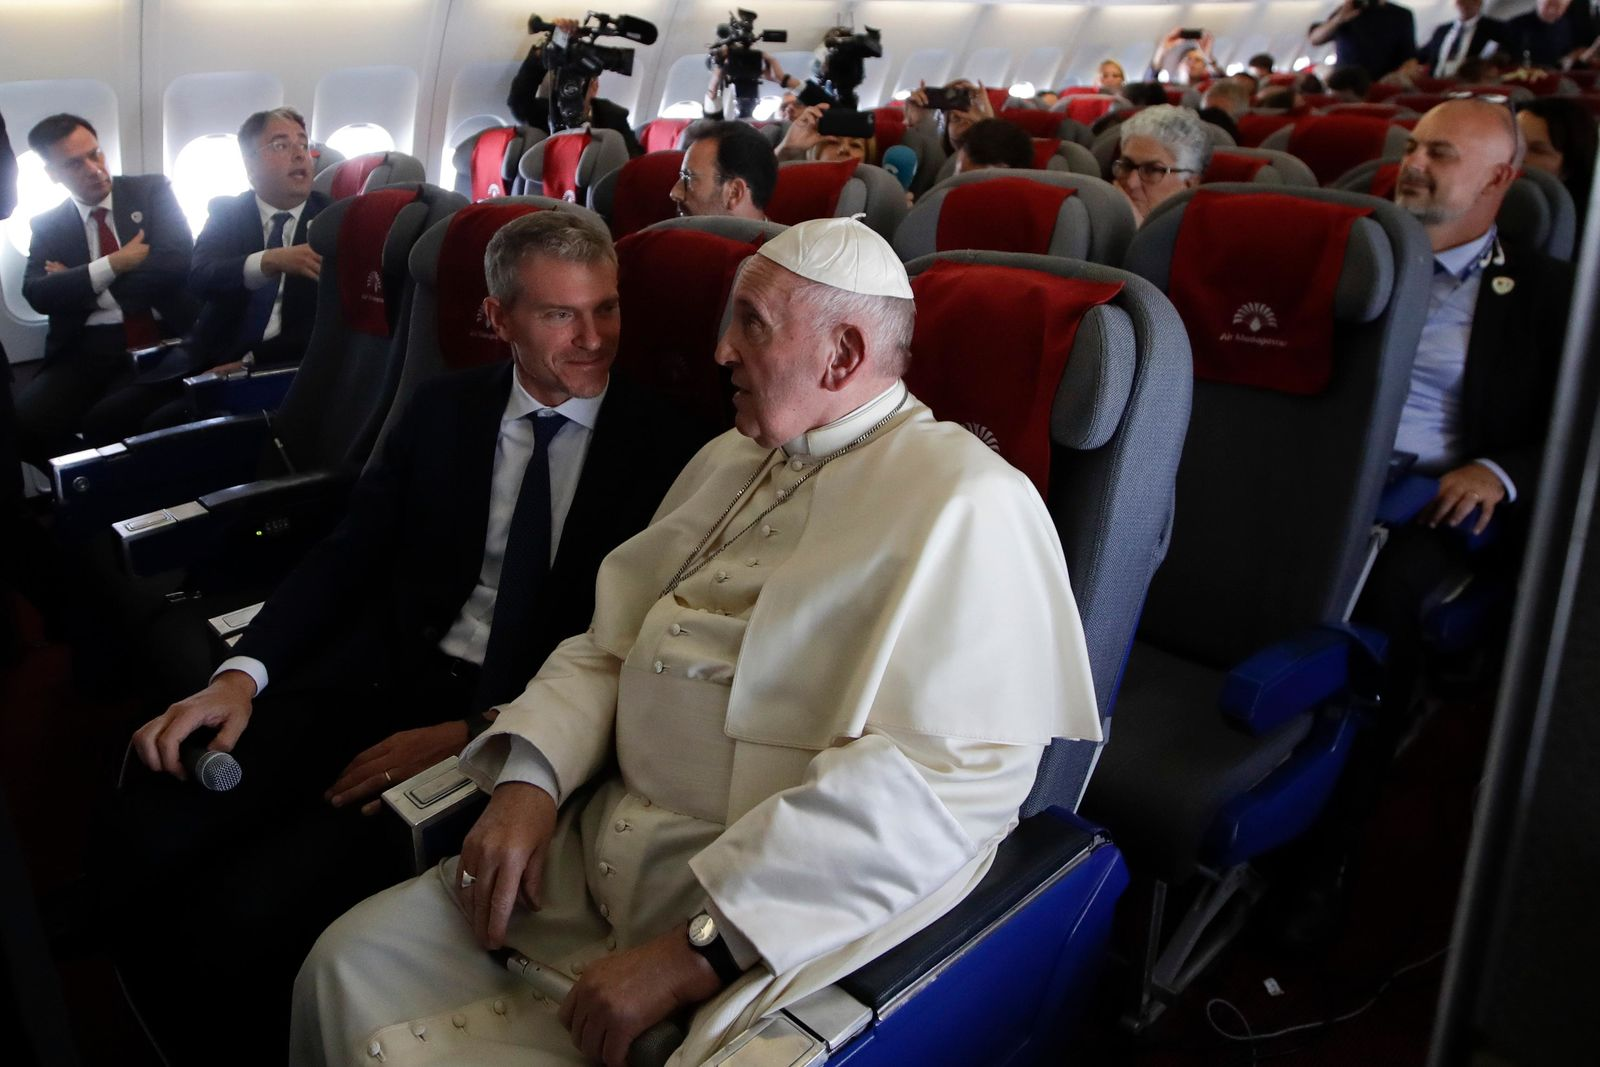 Pope Francis talks with his spokesperson Matteo Bruni, as they take a break during a moment of turbulence during a press conference on his way back from Antamanarivo to Rome, Tuesday, Sept. 10, 2019, after his seven-day pastoral trip to Mozambique, Madagascar, and Mauritius. (AP Photo/Alessandra Tarantino)